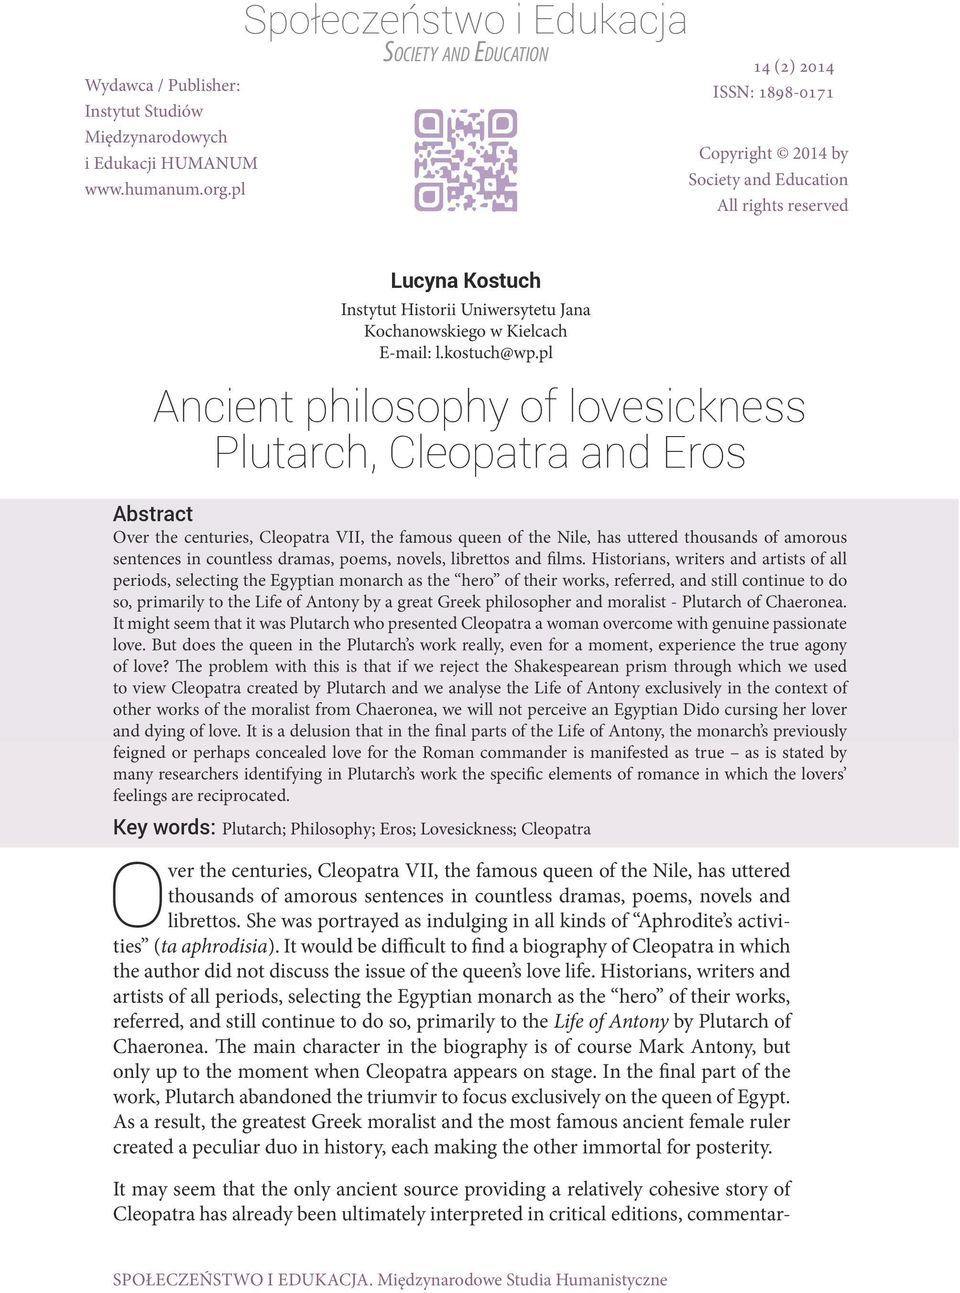 pl Ancient philosophy of lovesickness Plutarch, Cleopatra and Eros Abstract Over the centuries, Cleopatra VII, the famous queen of the Nile, has uttered thousands of amorous sentences in countless